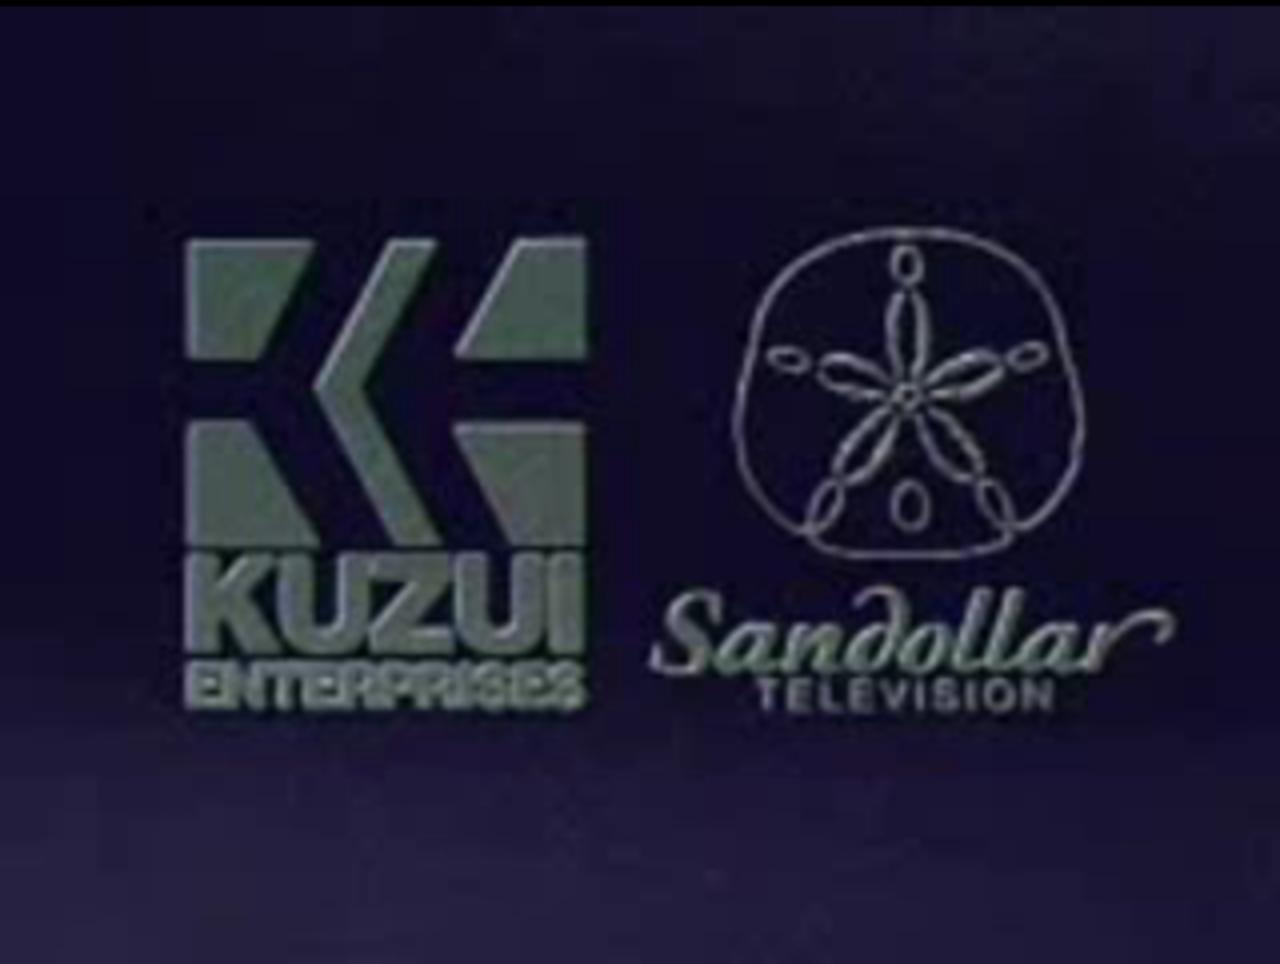 Kuzui Enterprises and Sandollar Television (1997)